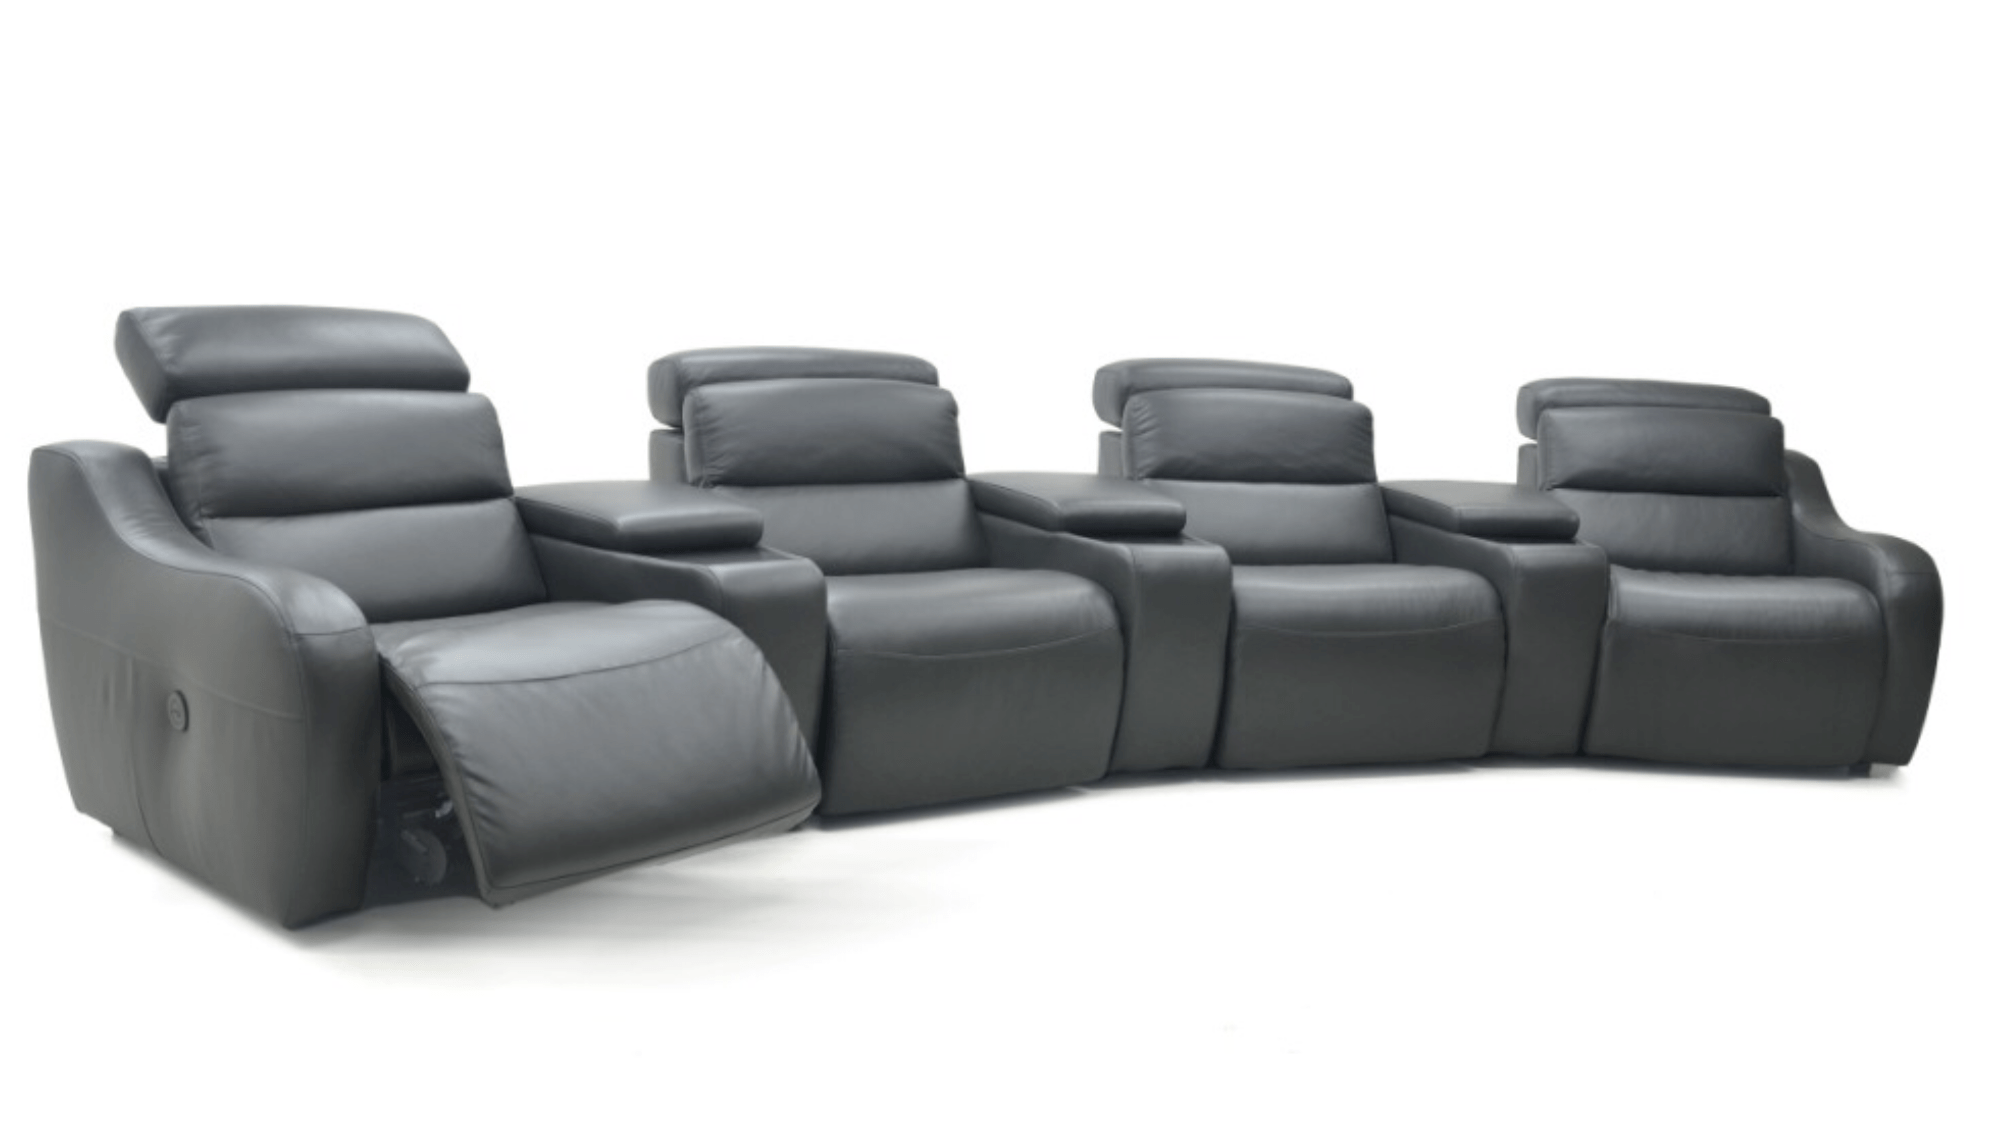 Sofa Set Action Home Cinema Sofas Best Deal Home Cinema Theatre Seating